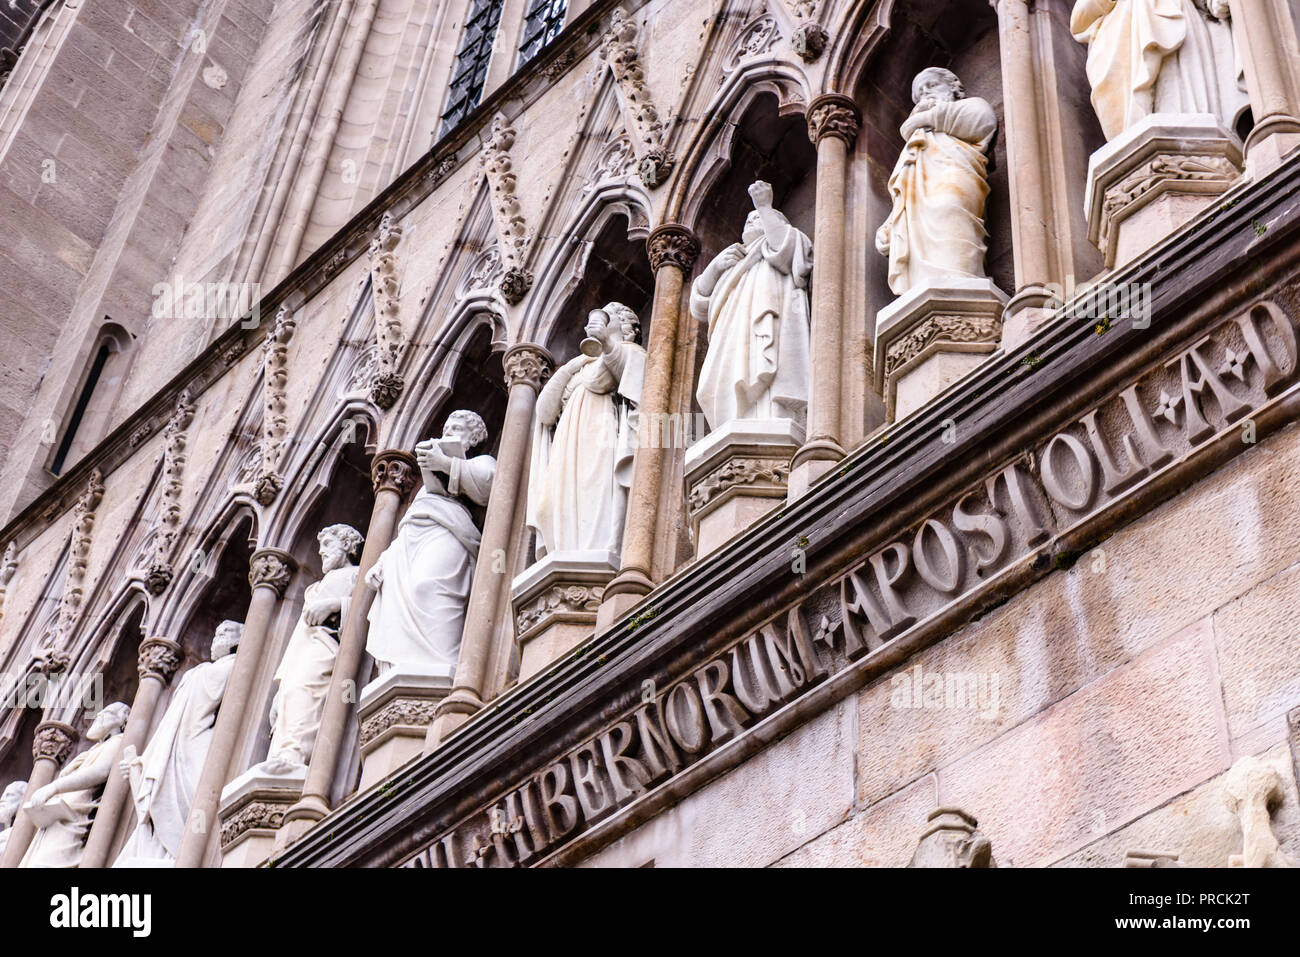 Marble statues of saints above the entrance of Armagh Roman Catholic Cathedral, Armagh, Northern Ireland. - Stock Image